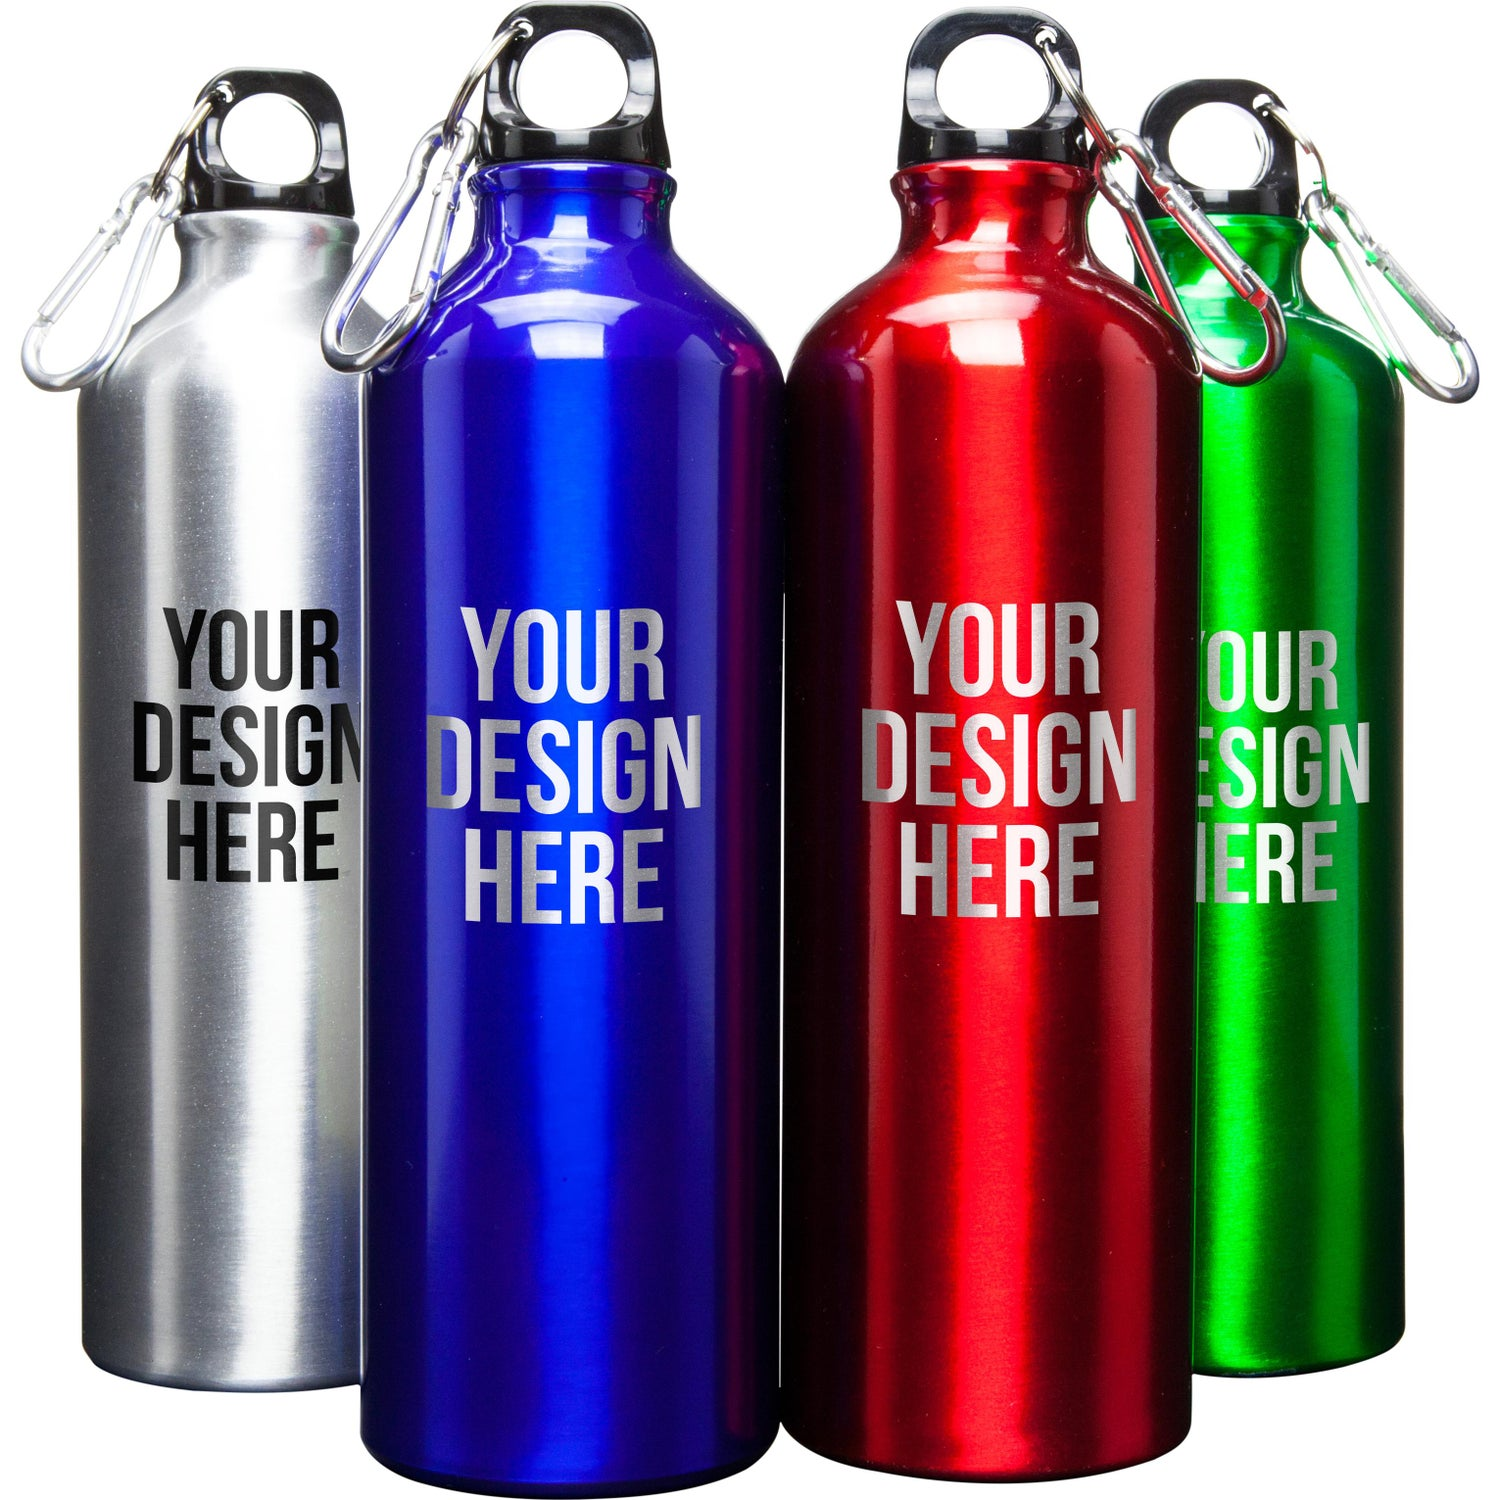 Water Bottle Personalised: Promotional 25 Oz. Alpine Aluminum Water Bottles With